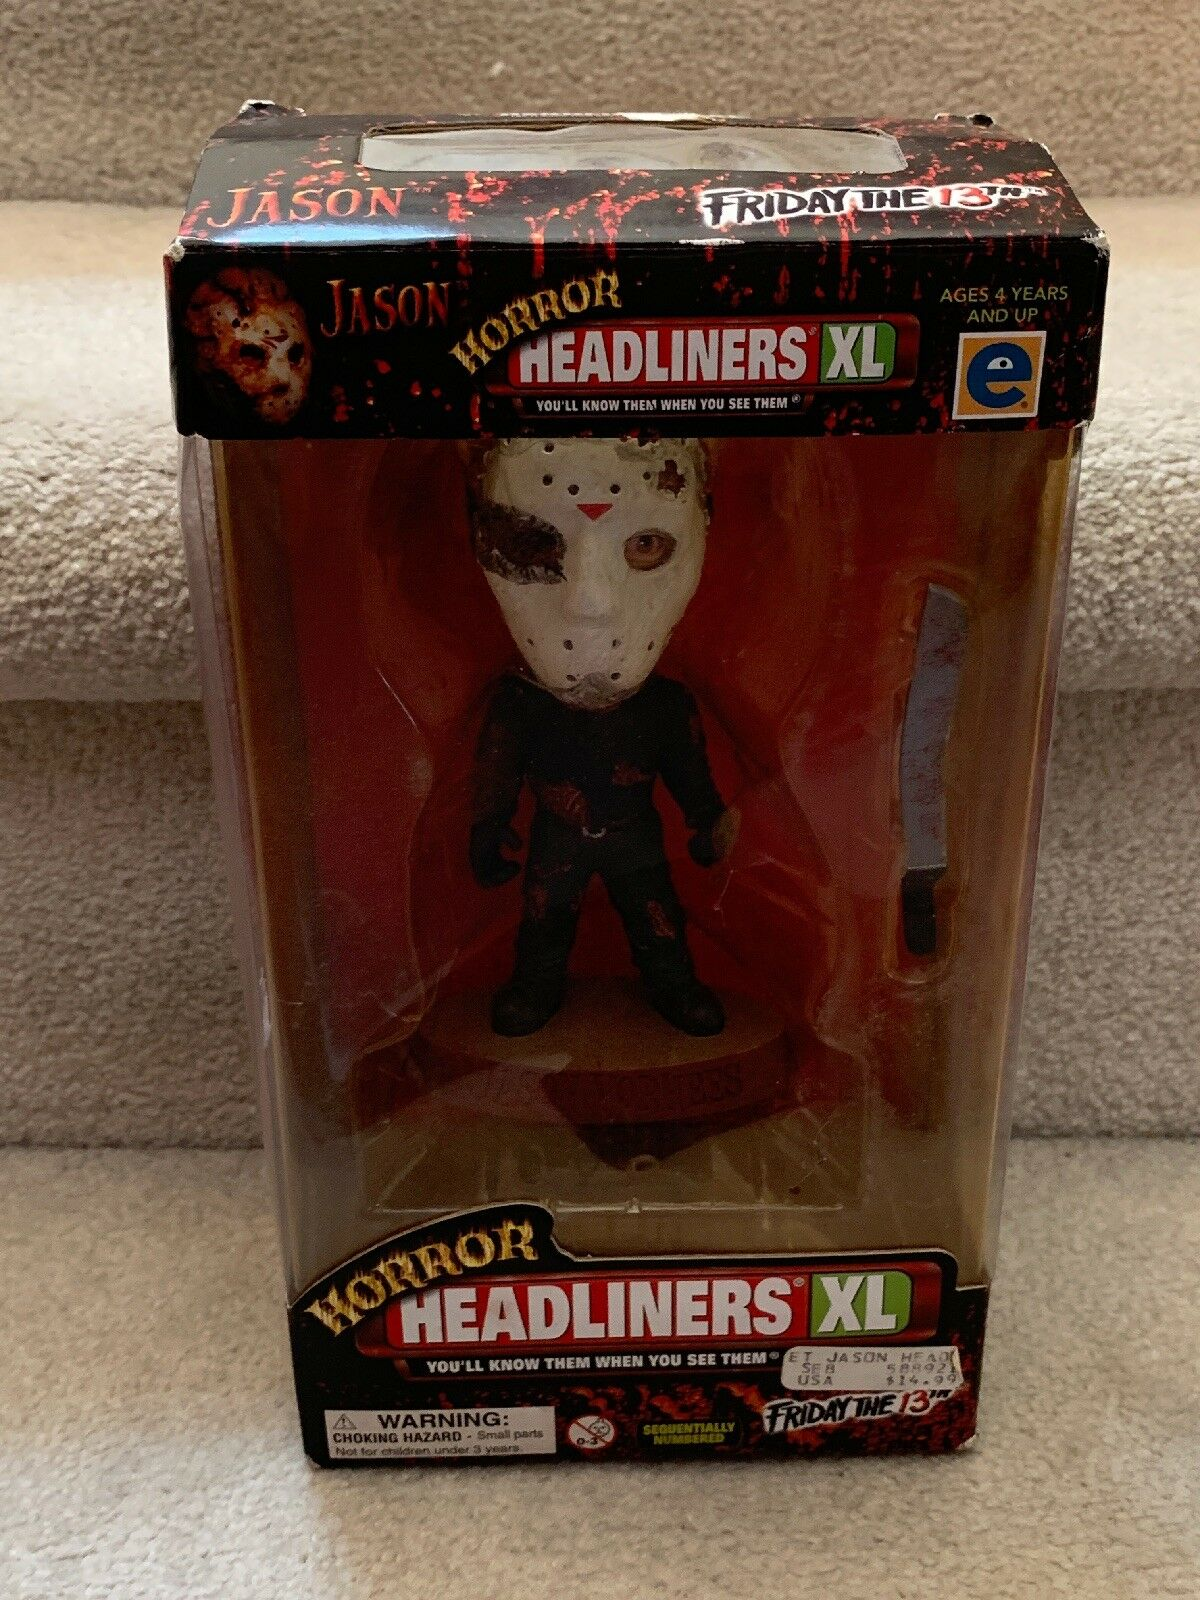 1999 HEADLINERS XL Friday The 13th Jason Voorhees  Horreur Figure nouveau in Box  jusqu'à 70% de réduction